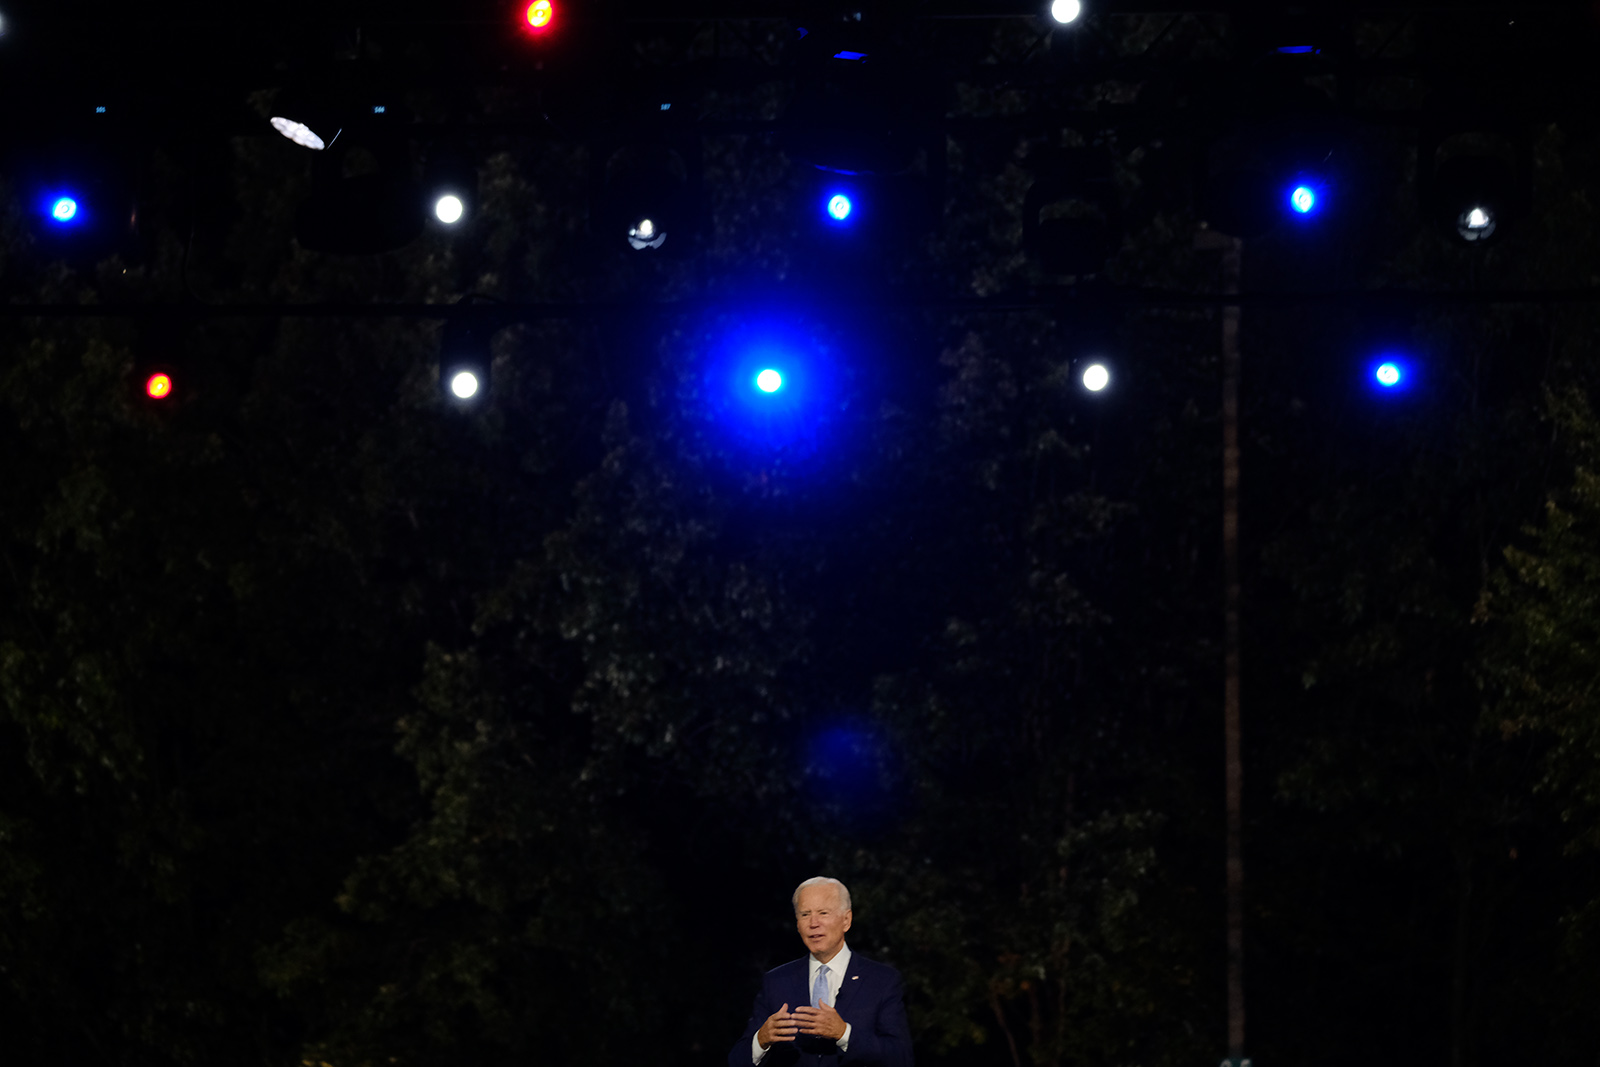 Democratic presidential nominee Joe Biden speaks at the CNN Presidential Town Hall in Scranton, Pennsylvania, on Thursday.